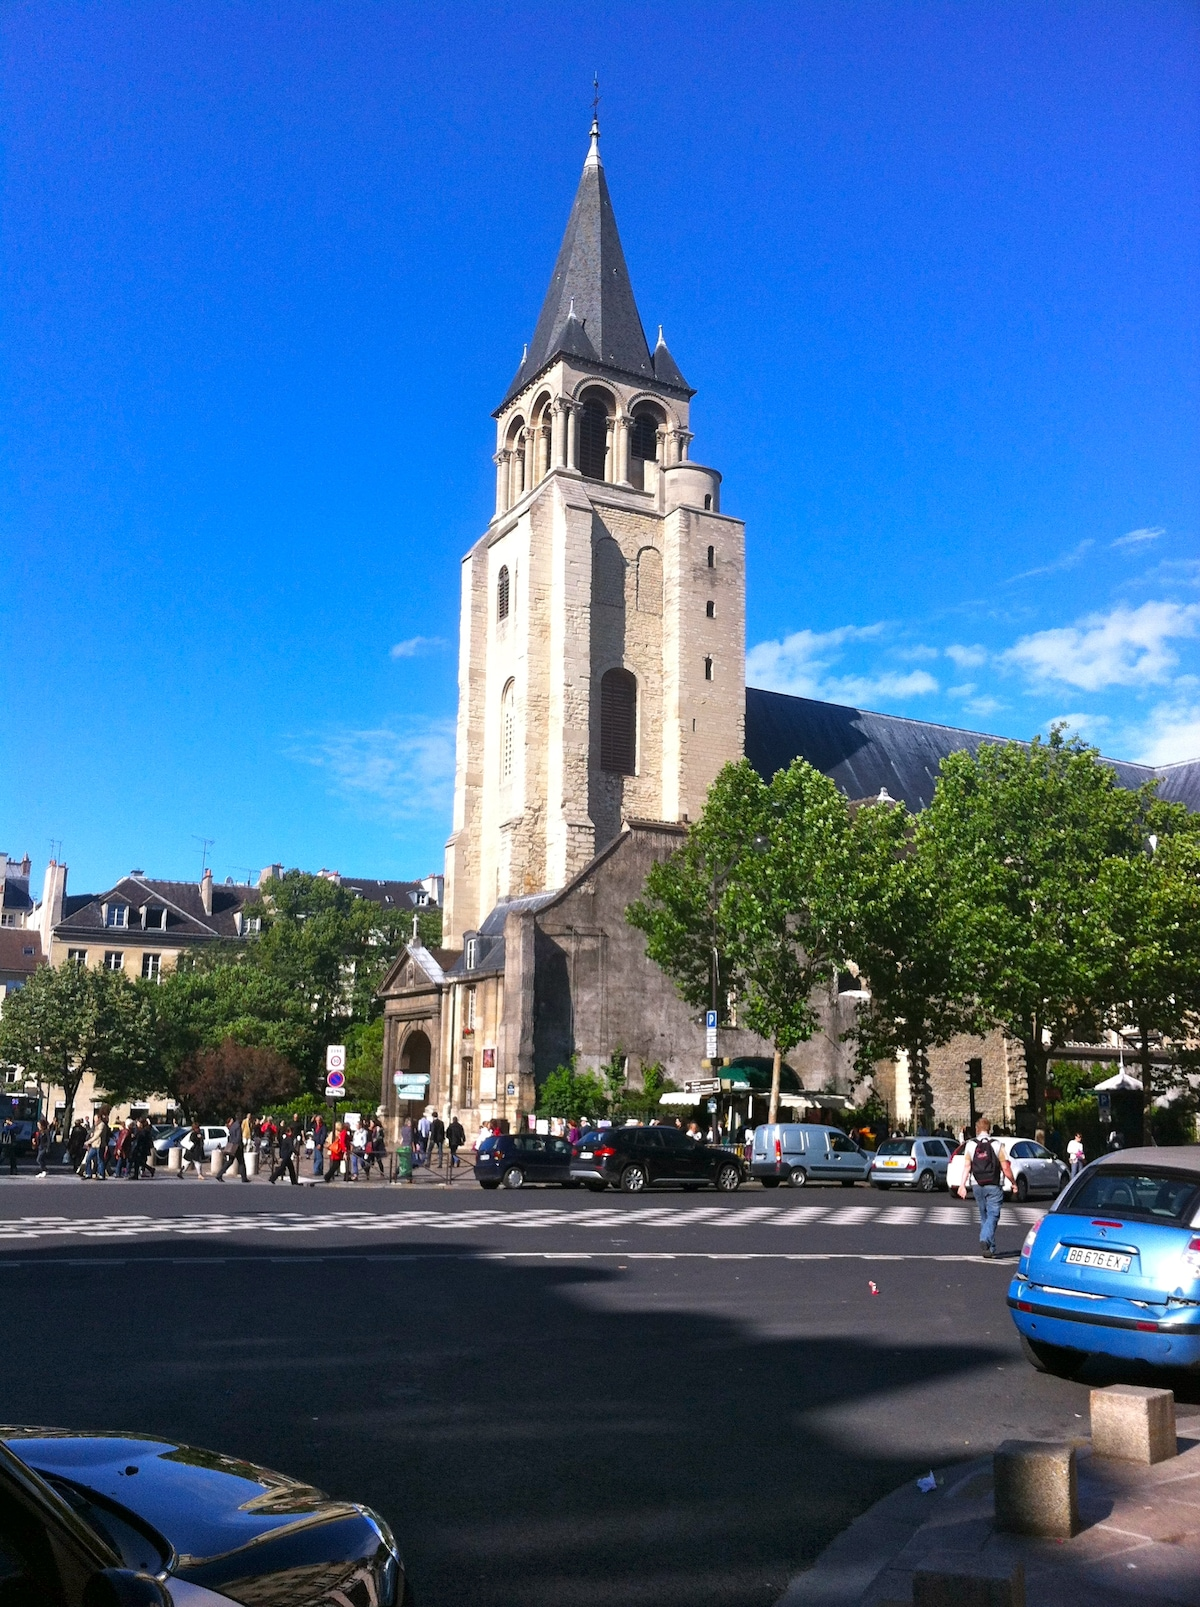 The XIIth century old church of Saint Germain des Près...